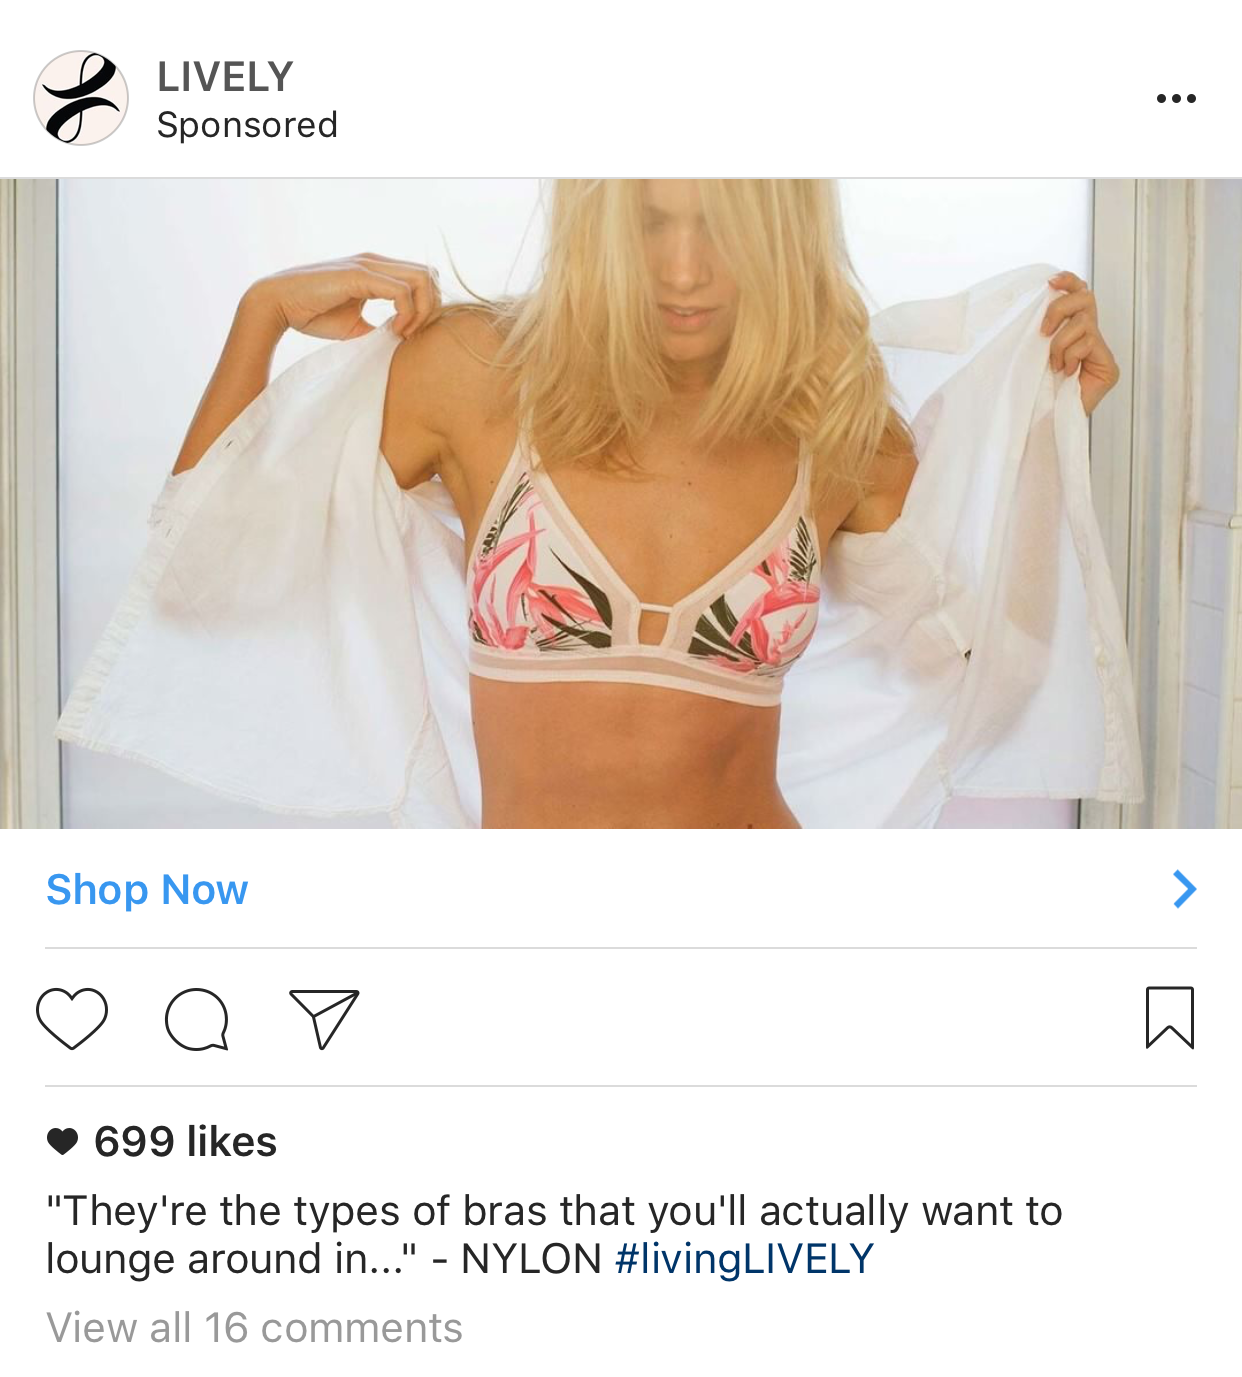 The Lively Instagram Ad